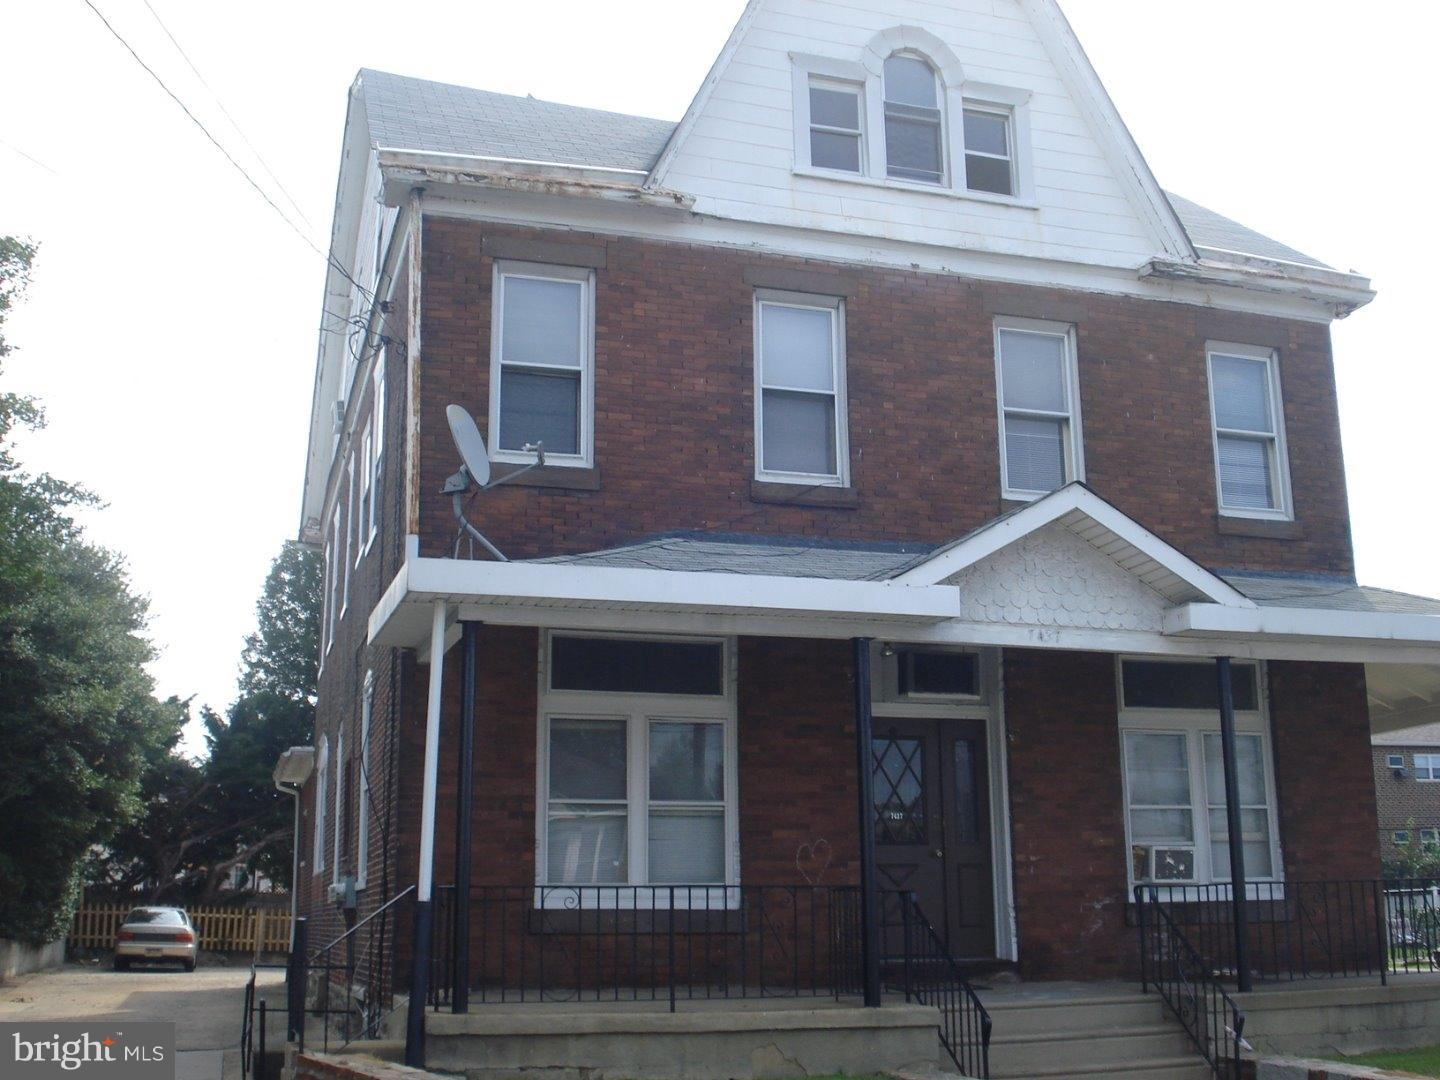 7437 OXFORD AVENUE, PHILADELPHIA, PA 19111